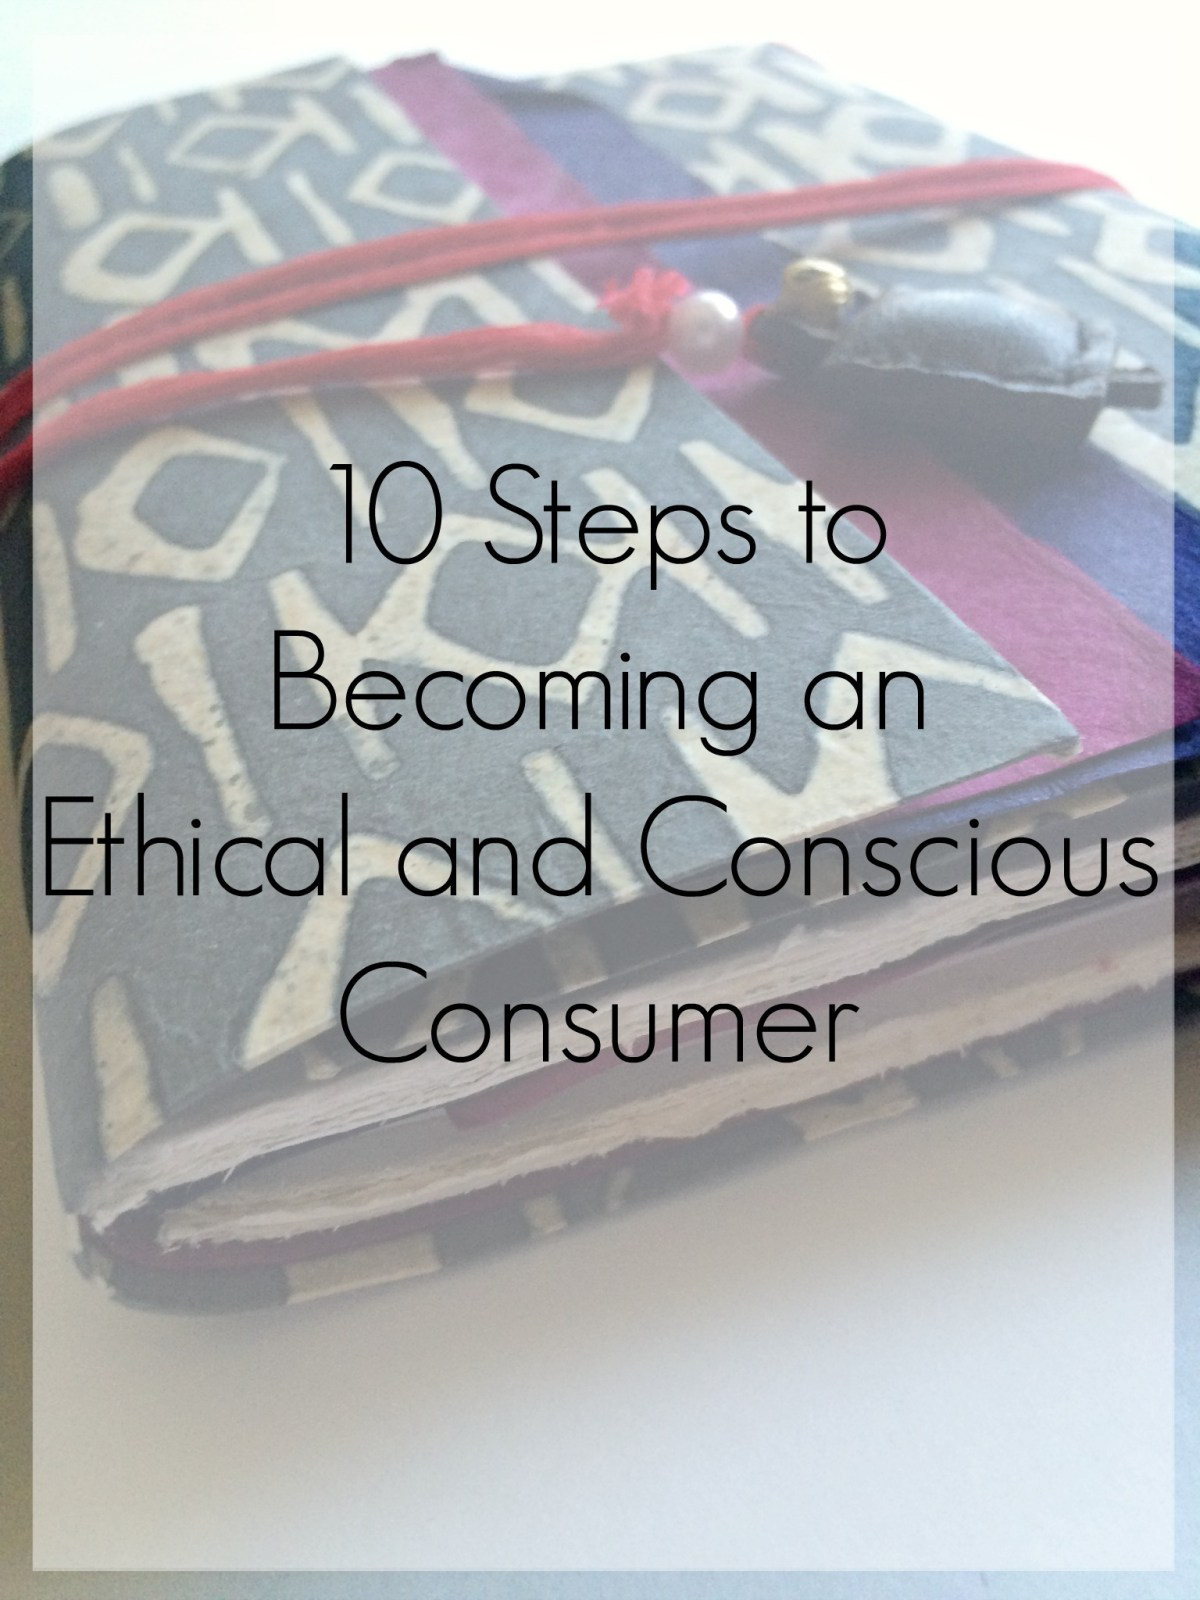 Choosing Human discusses 10 Easy Steps and Ways to become an Ethical Consumer or a Conscious Consumer